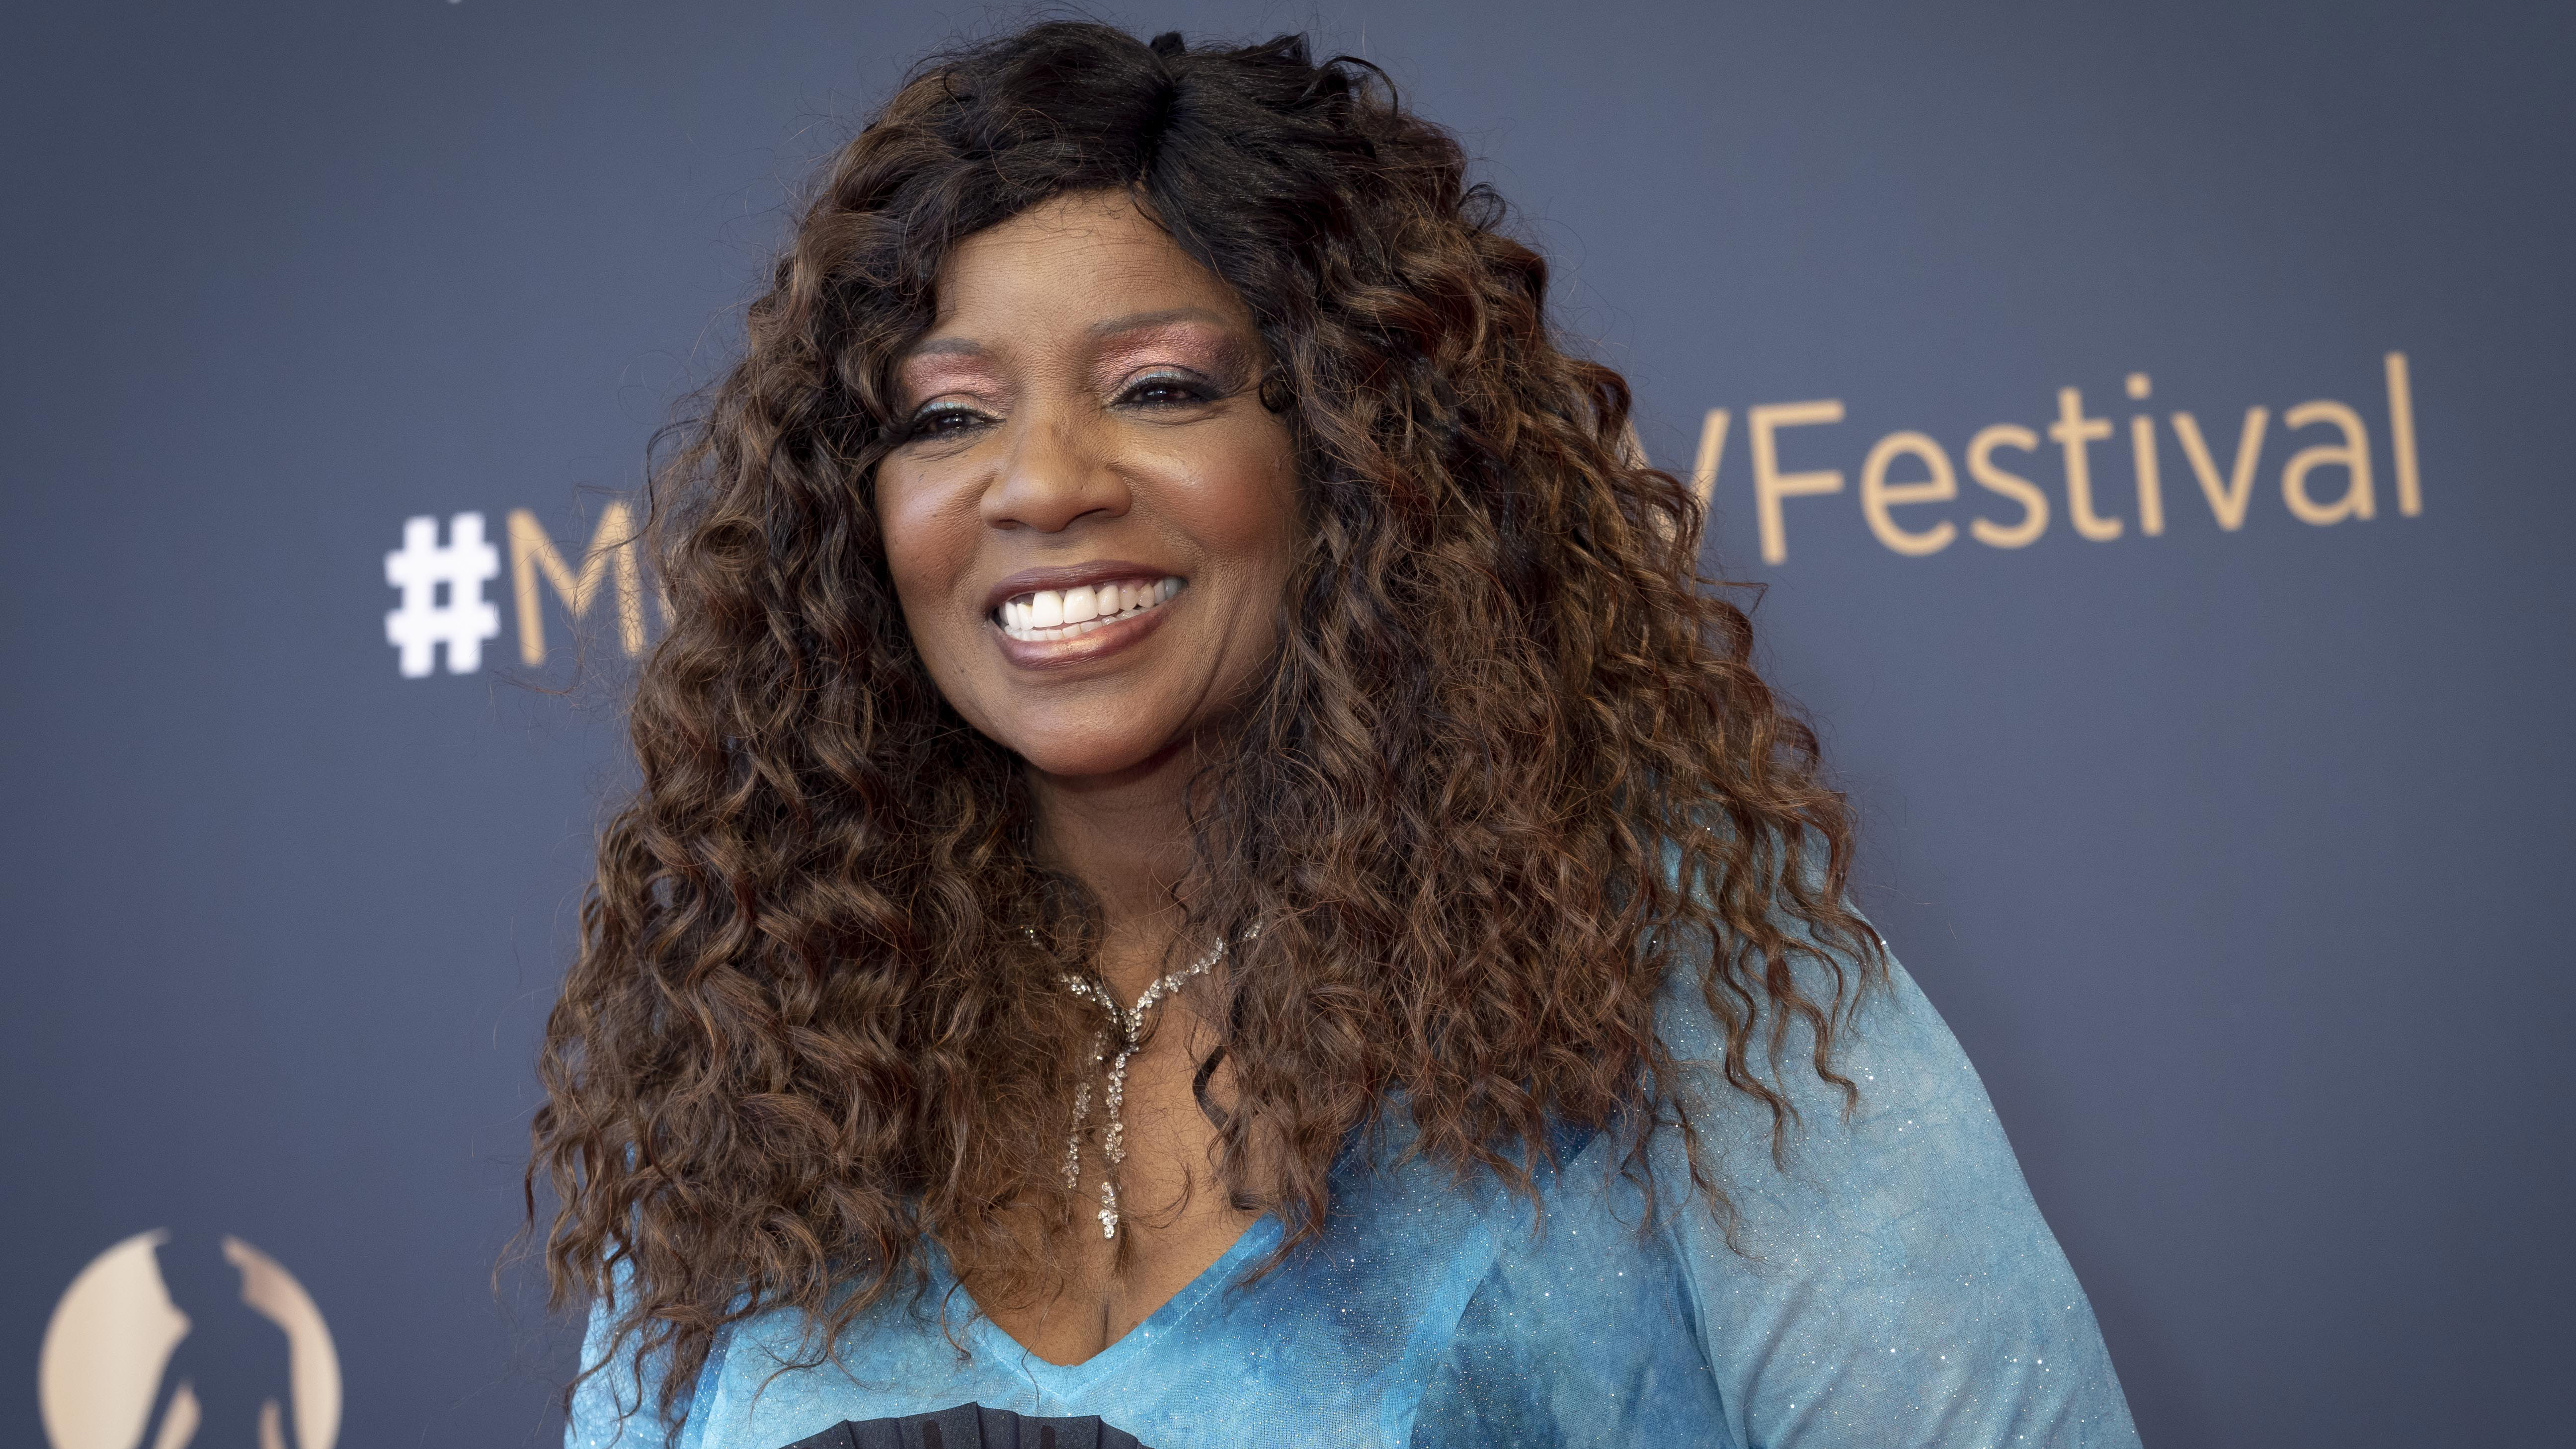 ExclusiveGloria Gaynor May Be Known For Her Hit Song 'I'm a Survivor,' But Did You Know She Actually Is One?